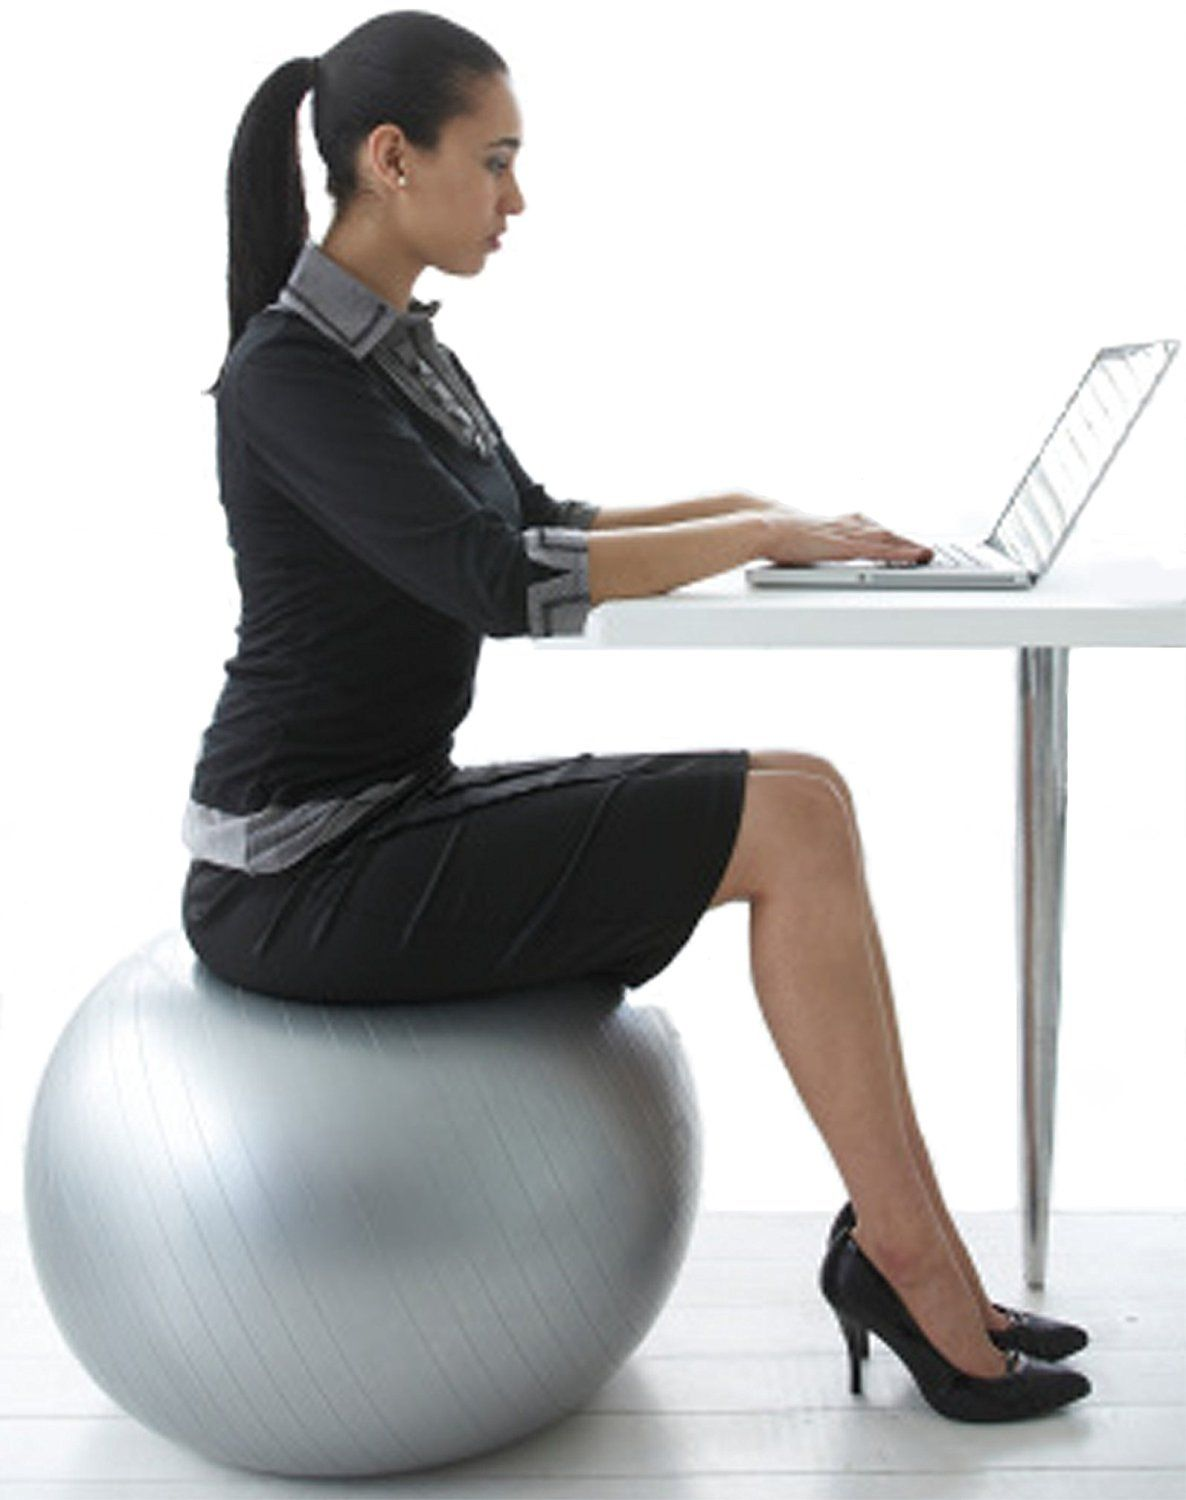 Yoga Ball Desk Chair Yoga Ball Chairs Balance Ball For Stability Guide And Review